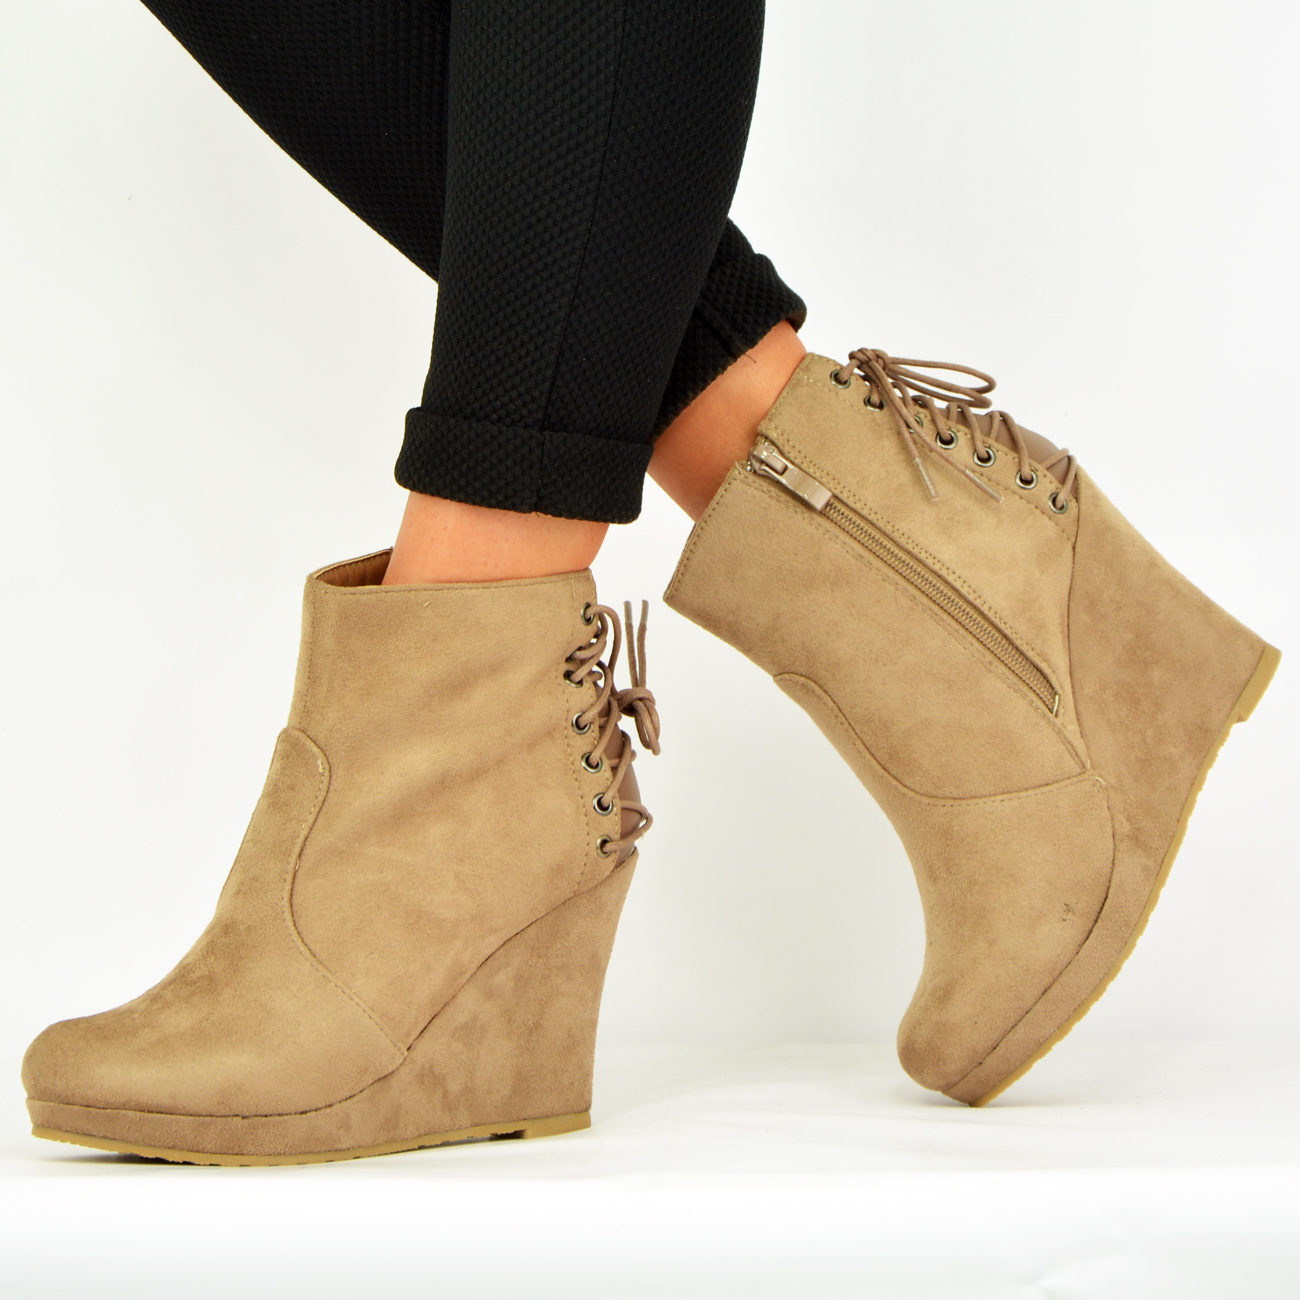 new womens wedge ankle boots back lace side zip